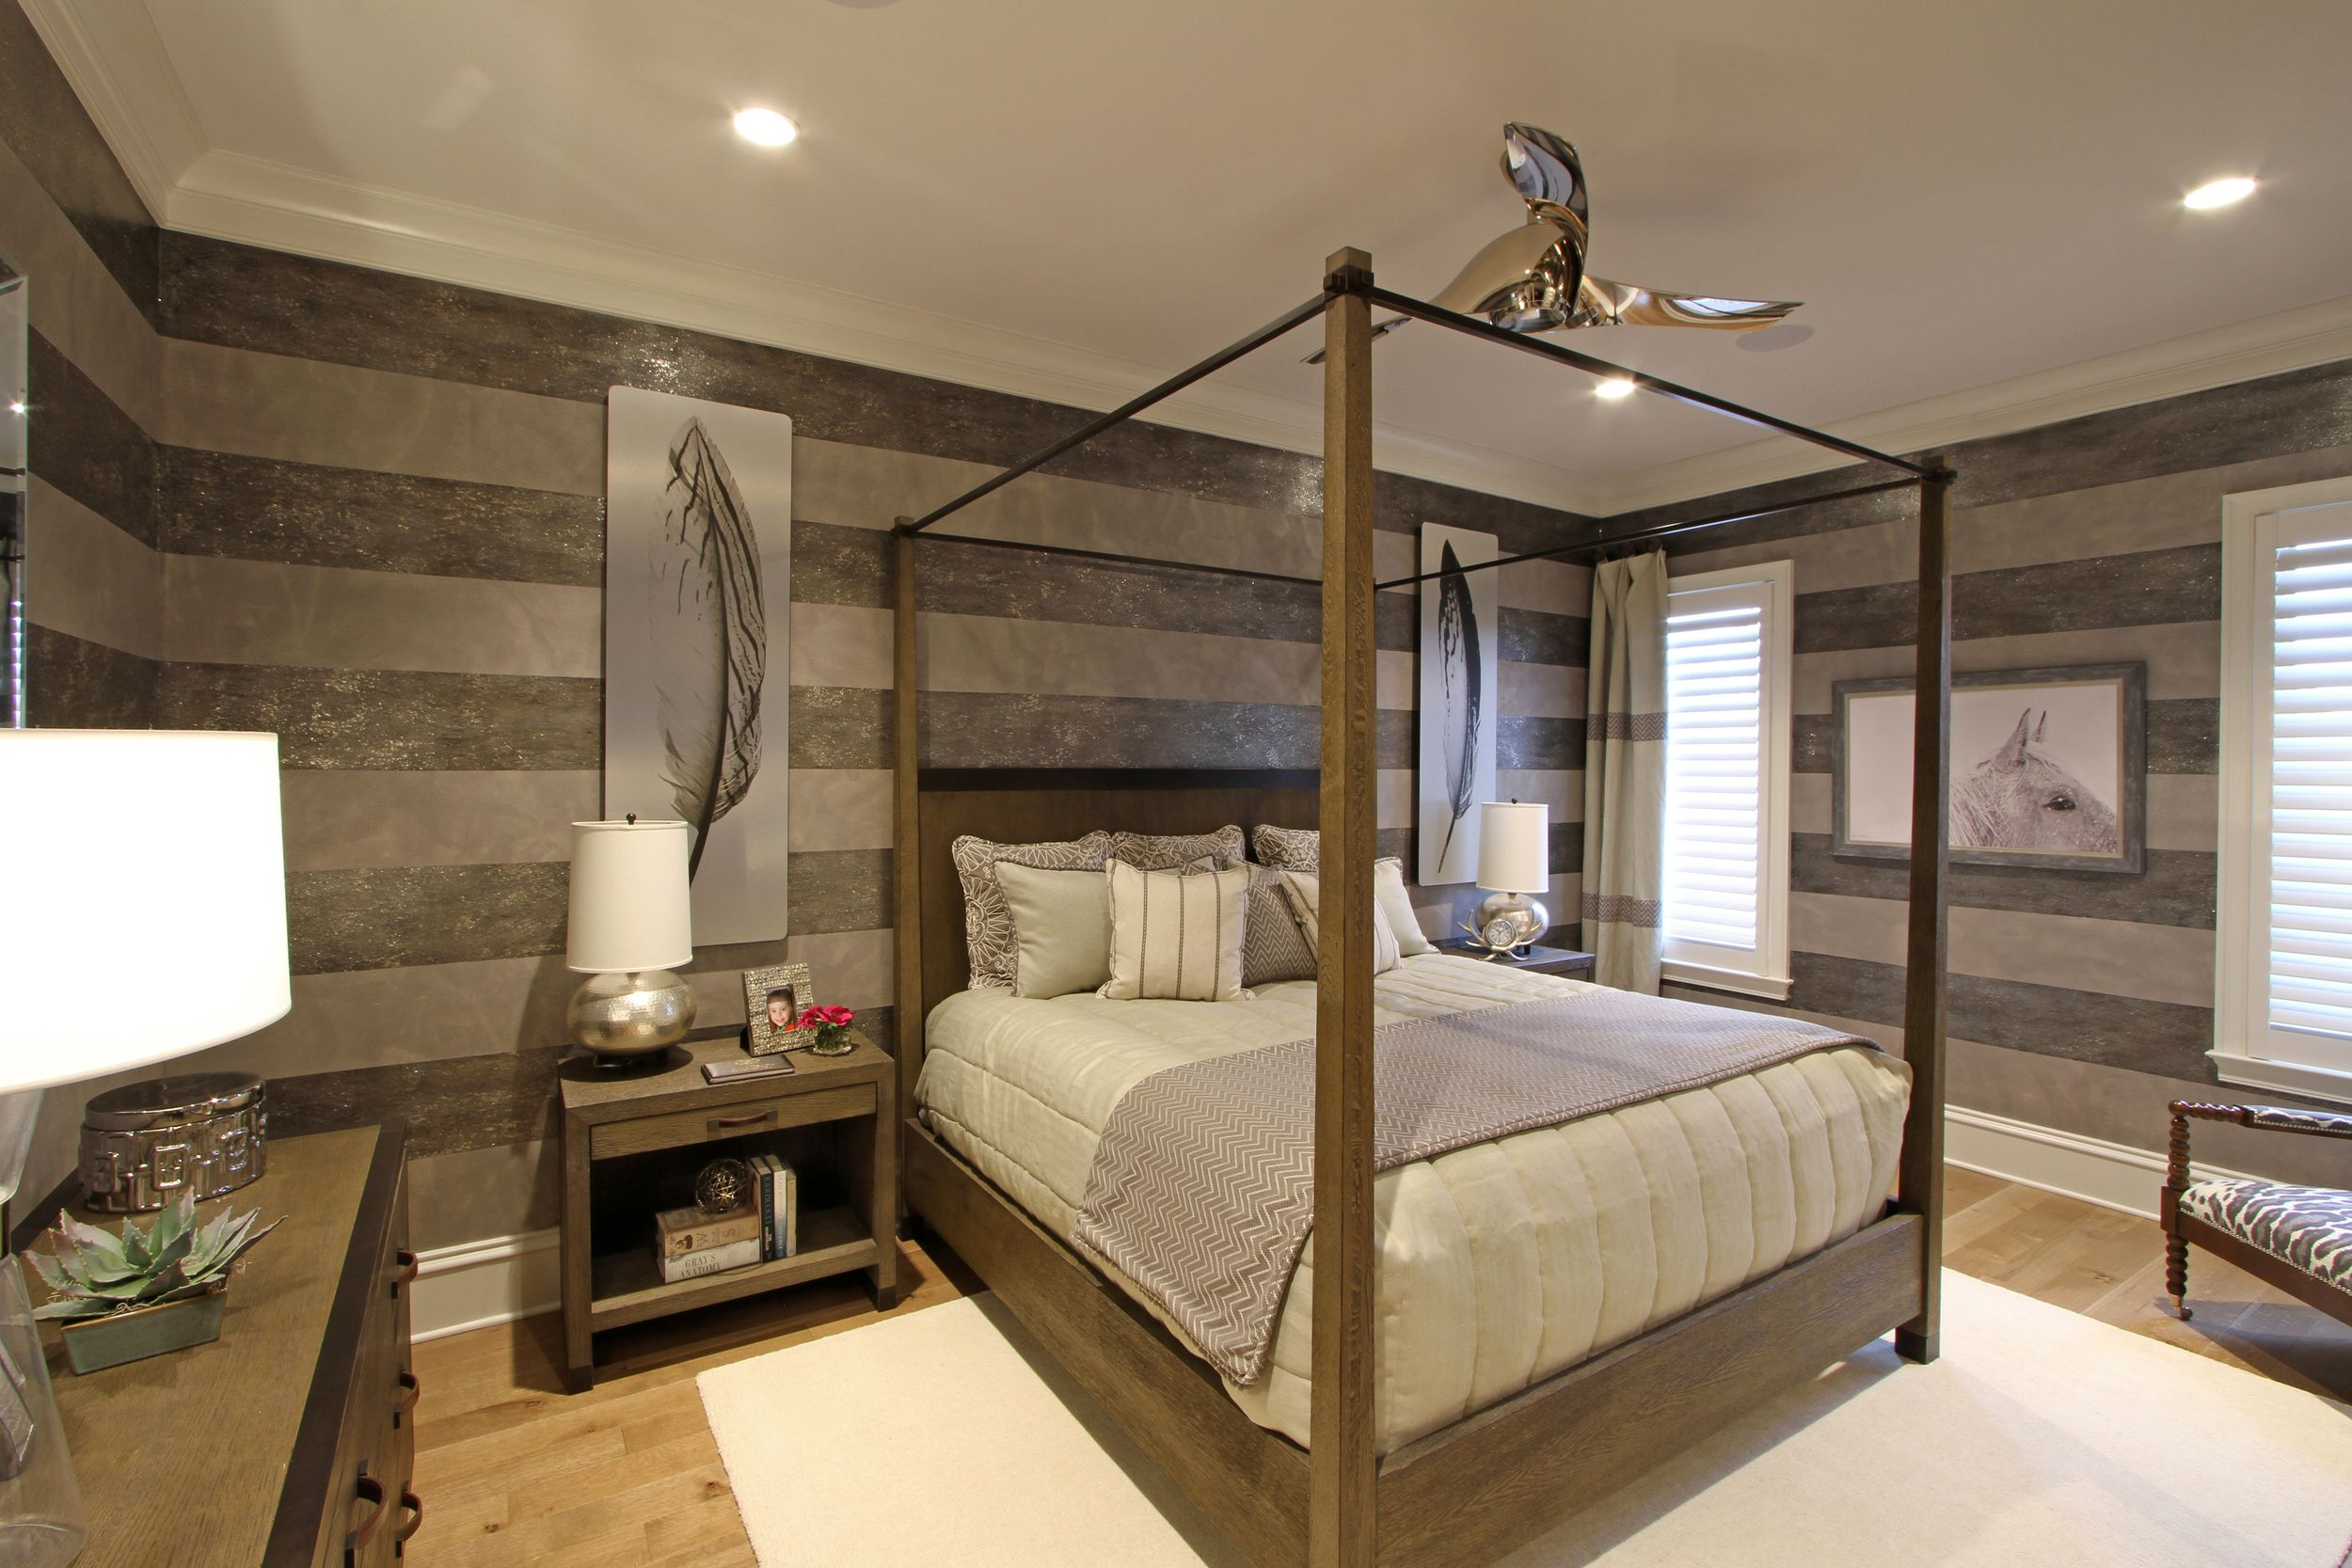 Bedroom by Designs on Madison Interior design projects